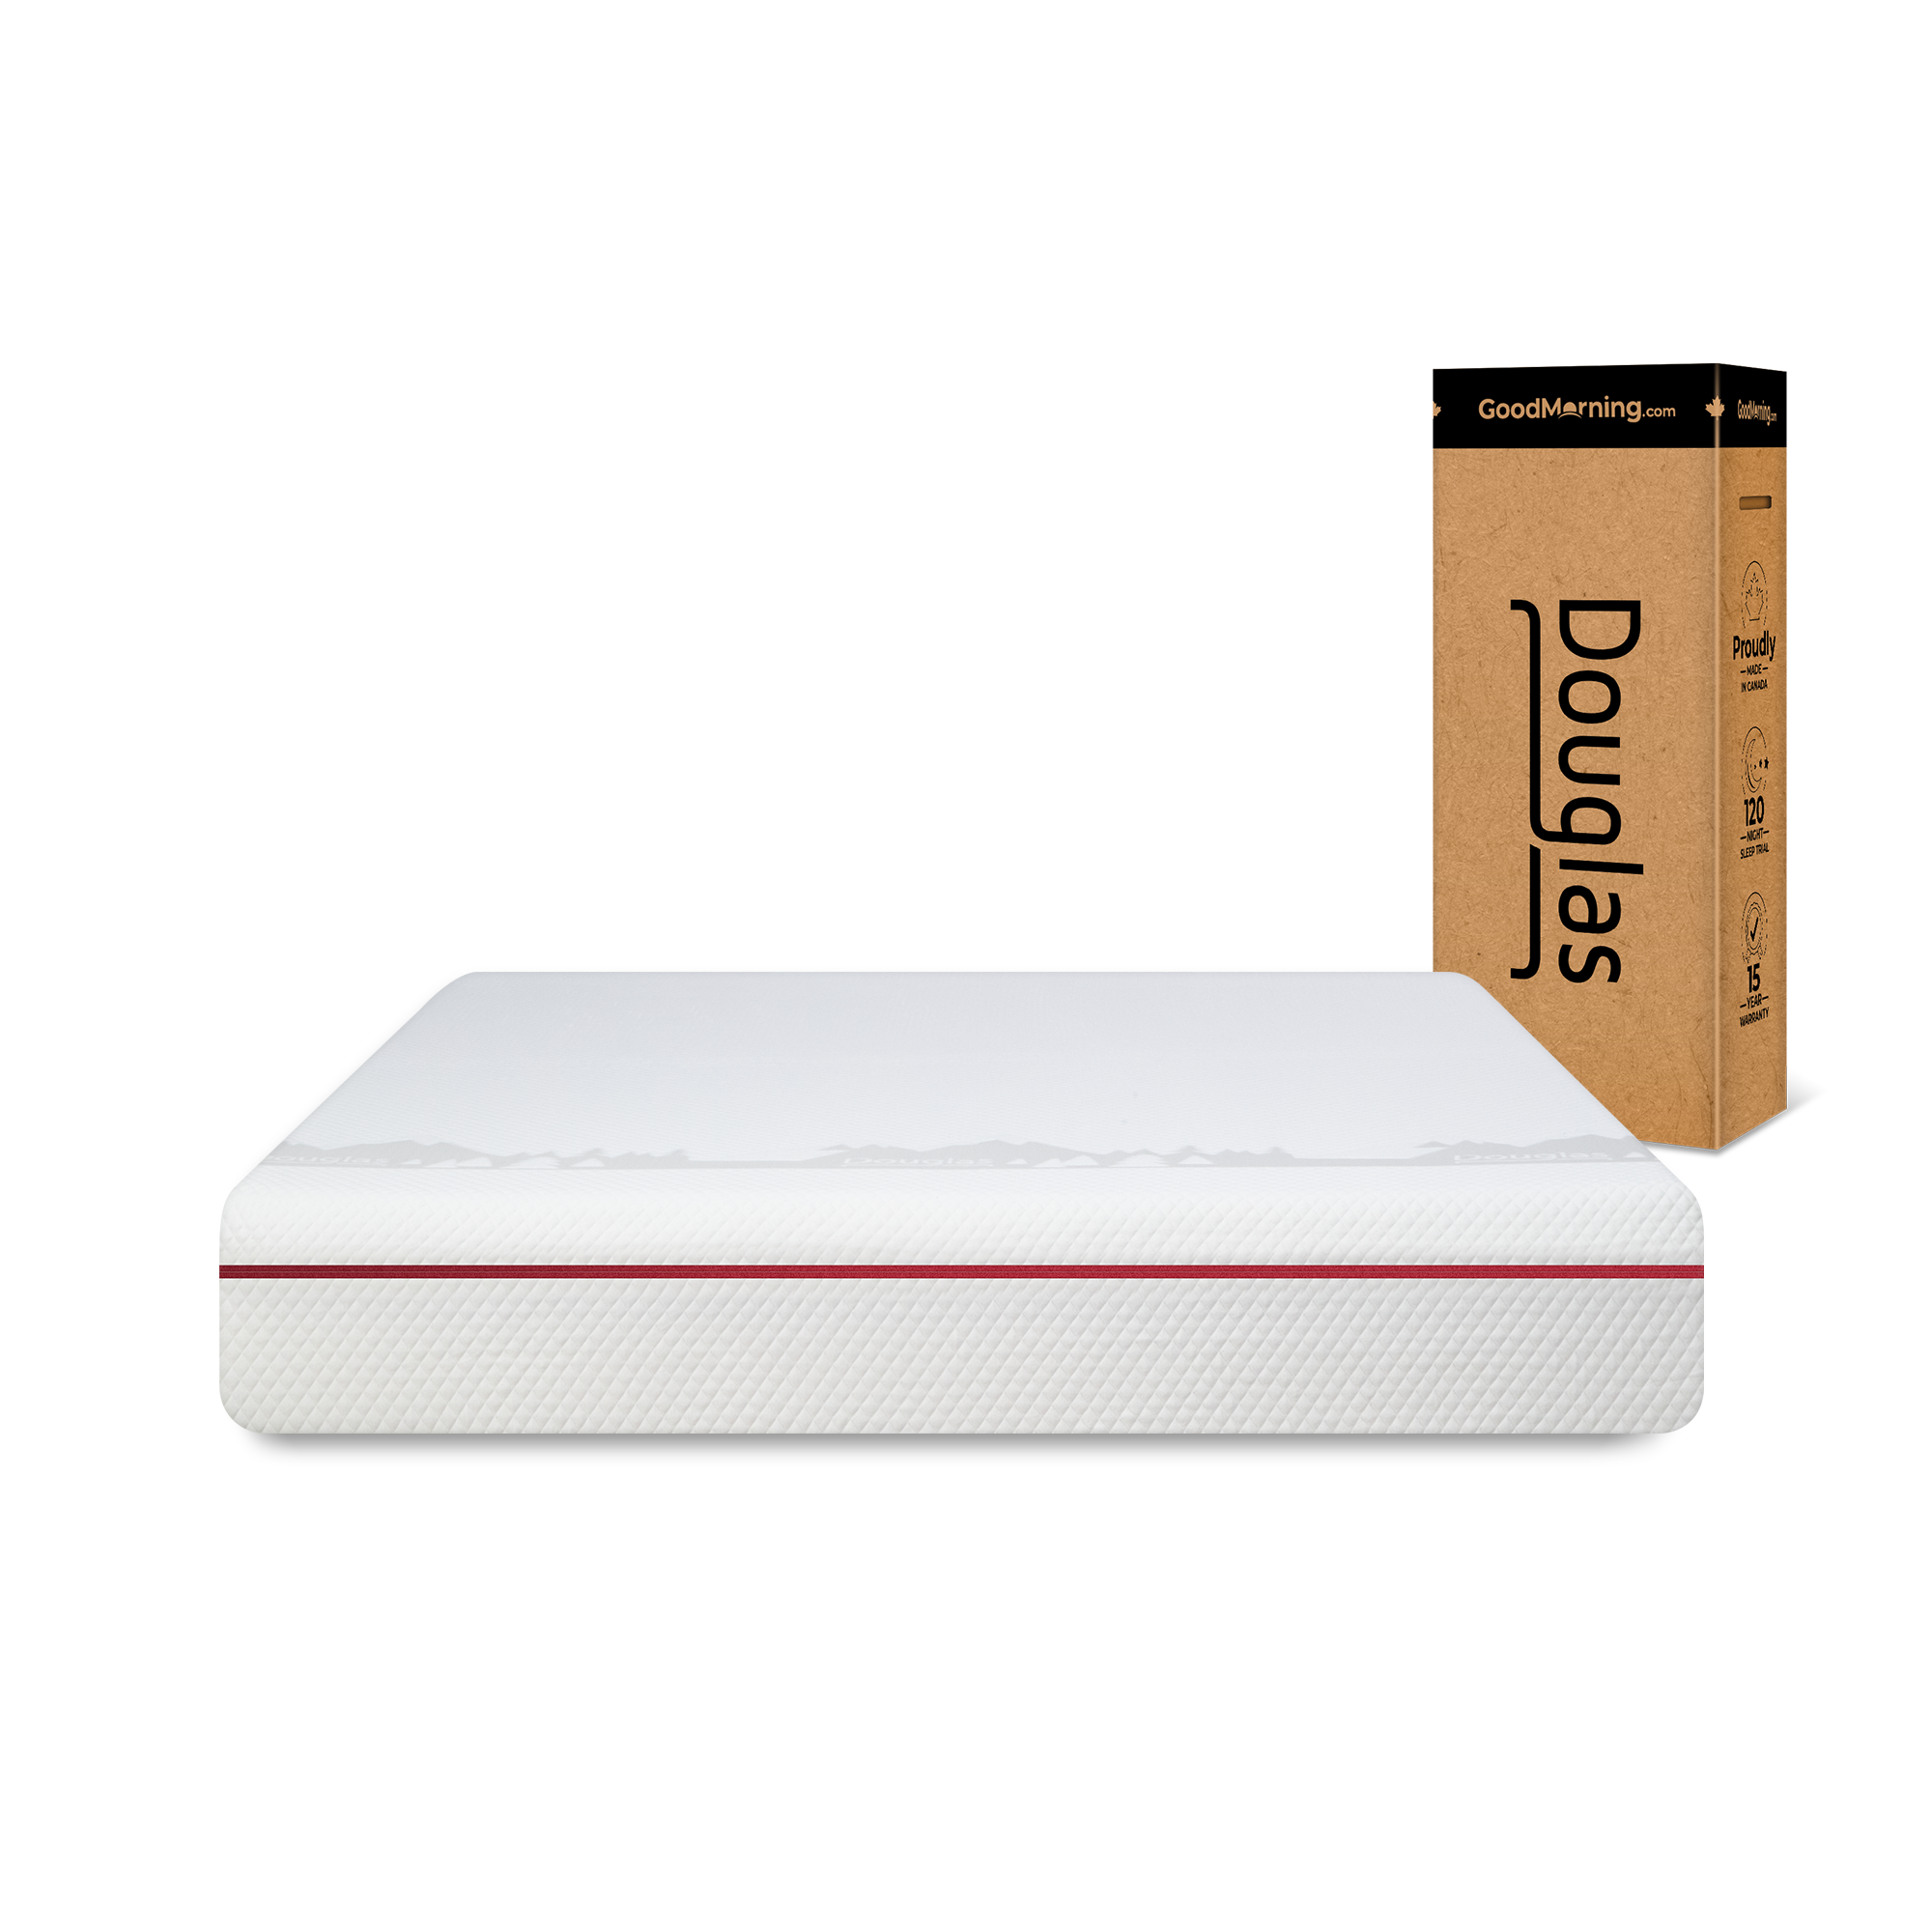 The Douglas Mattress by GoodMorning